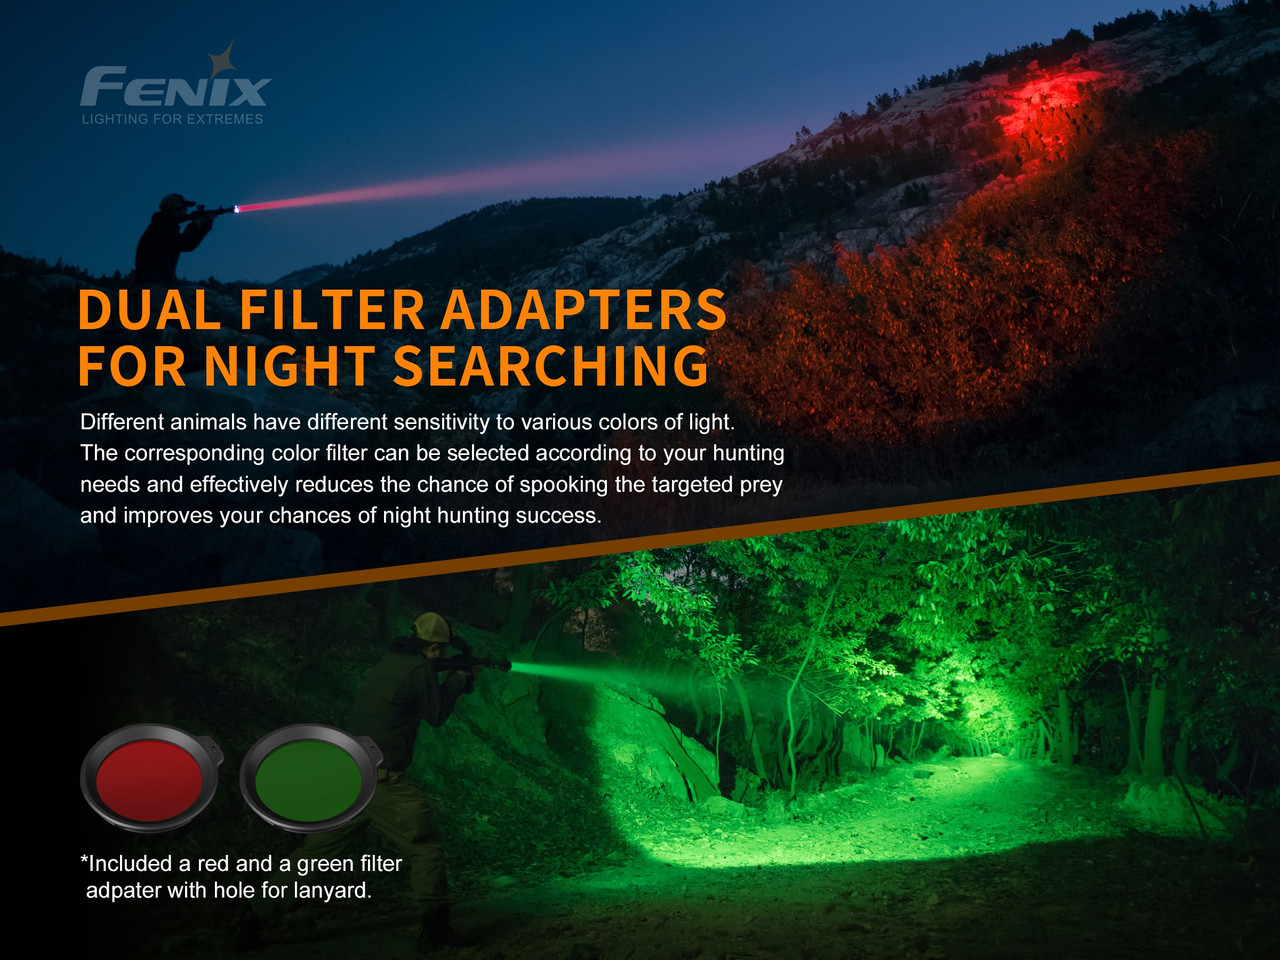 Fenix HT18 1500 Lumen Long-Range Hunting Flashlight (HT18)